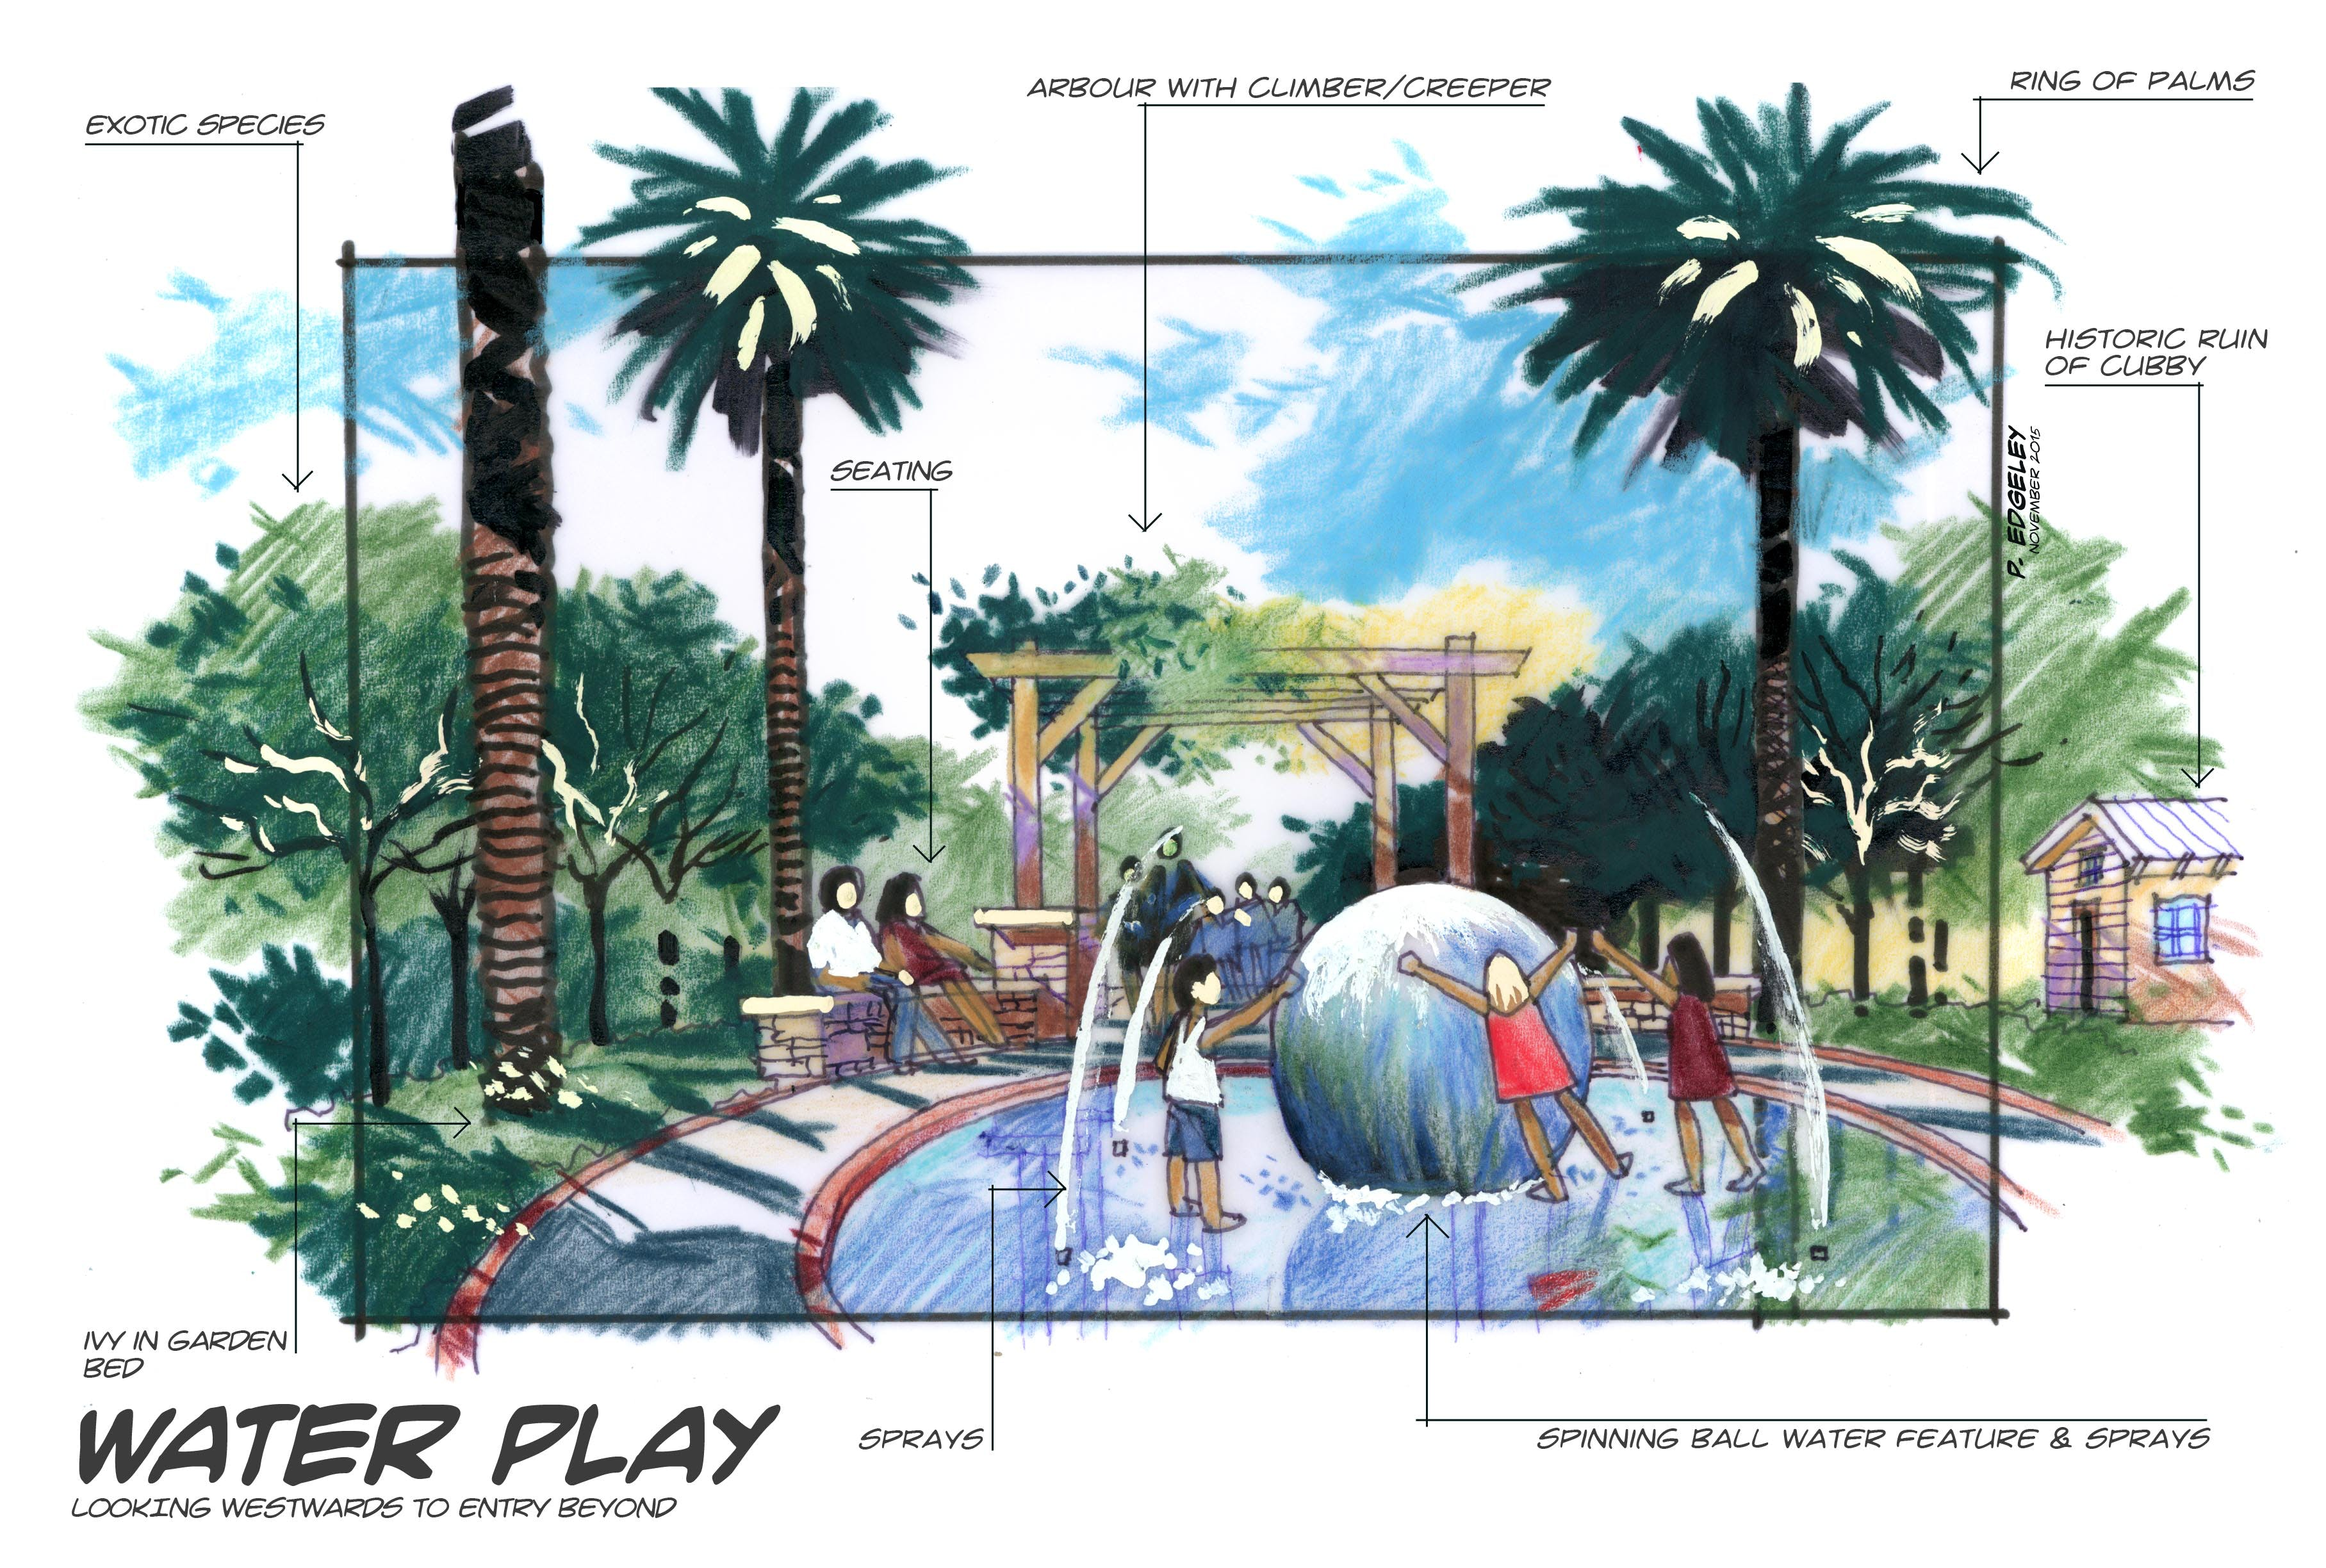 Arbour and waterplay area